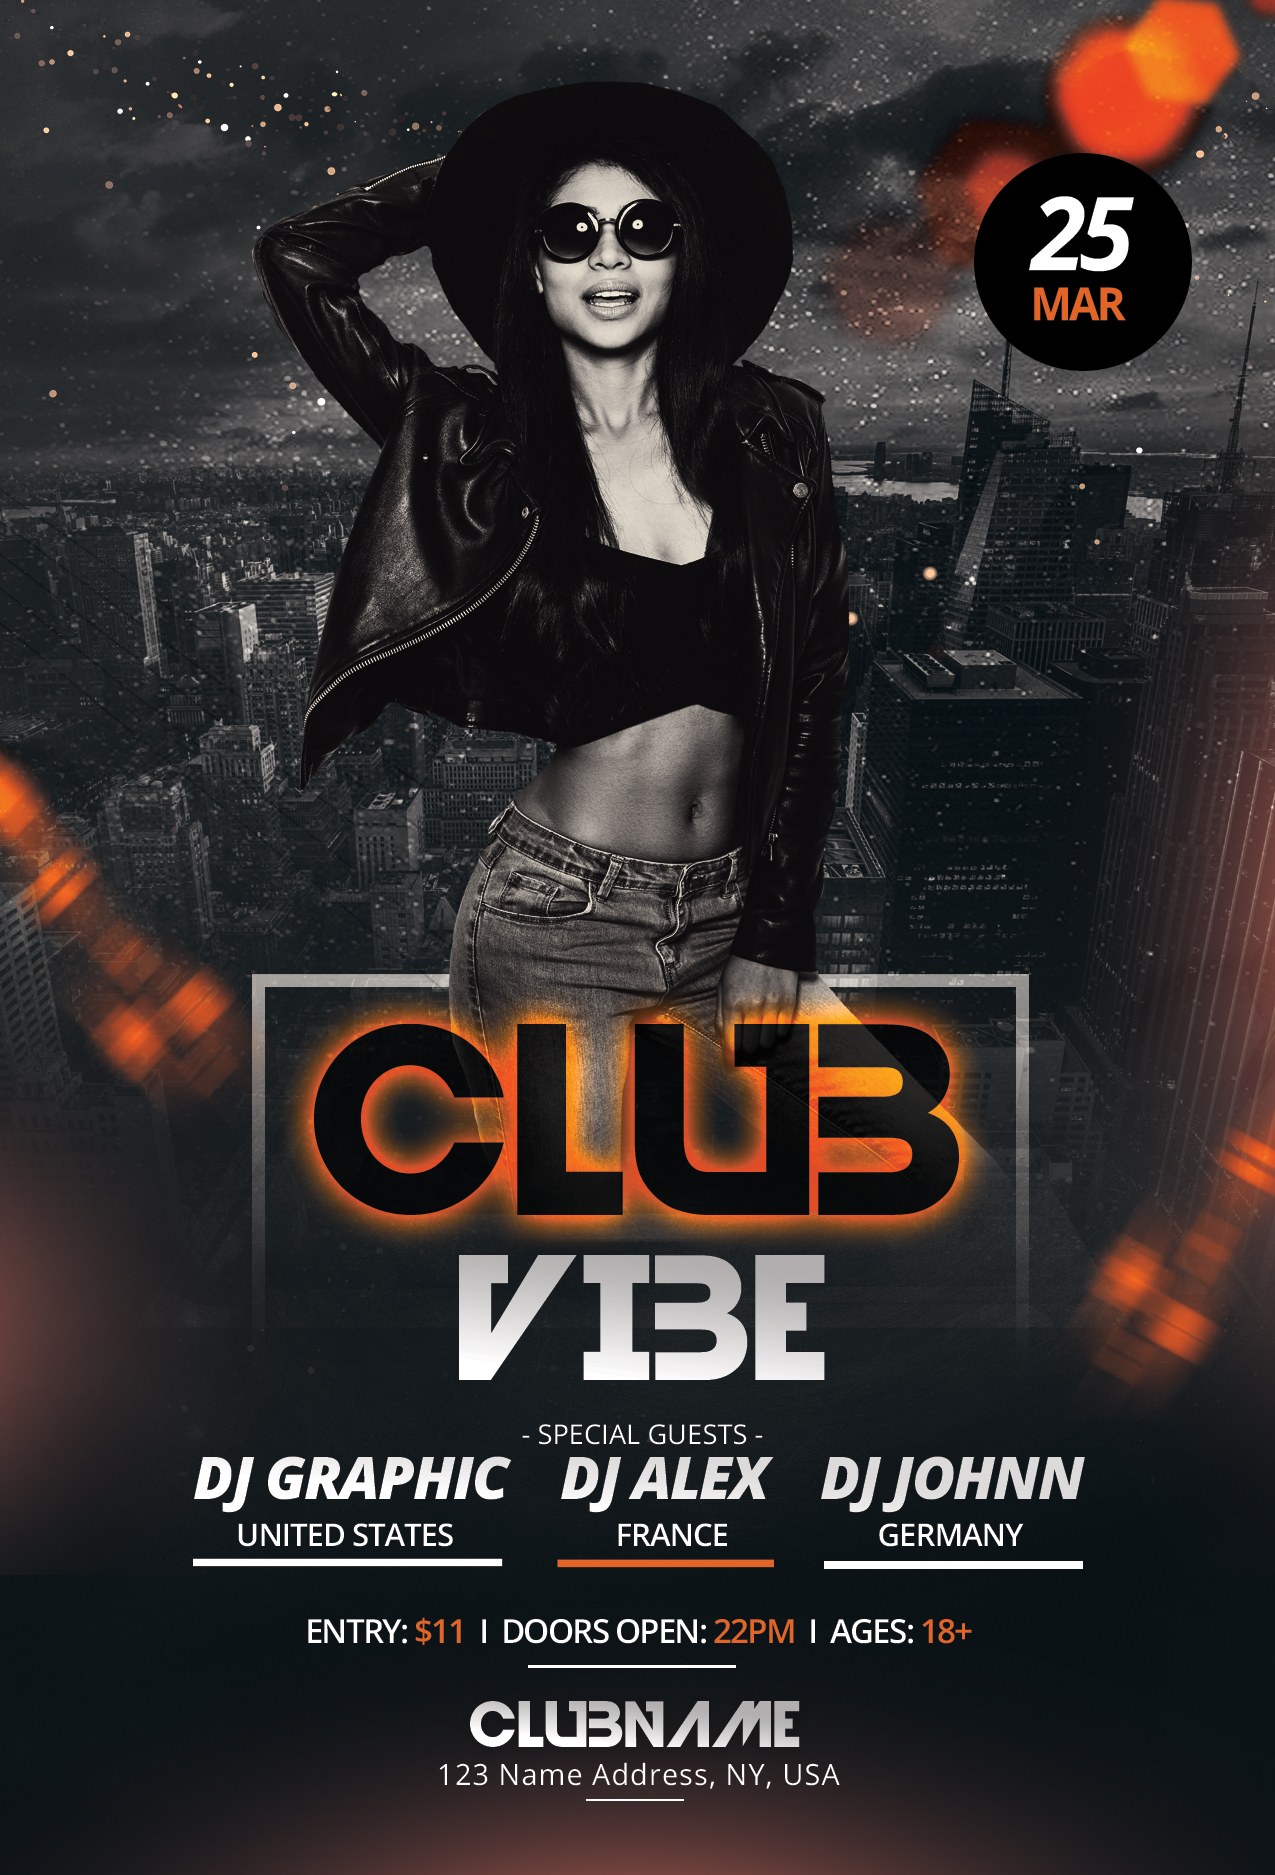 Club Vibe - Free Photoshop PSD Flyer Template